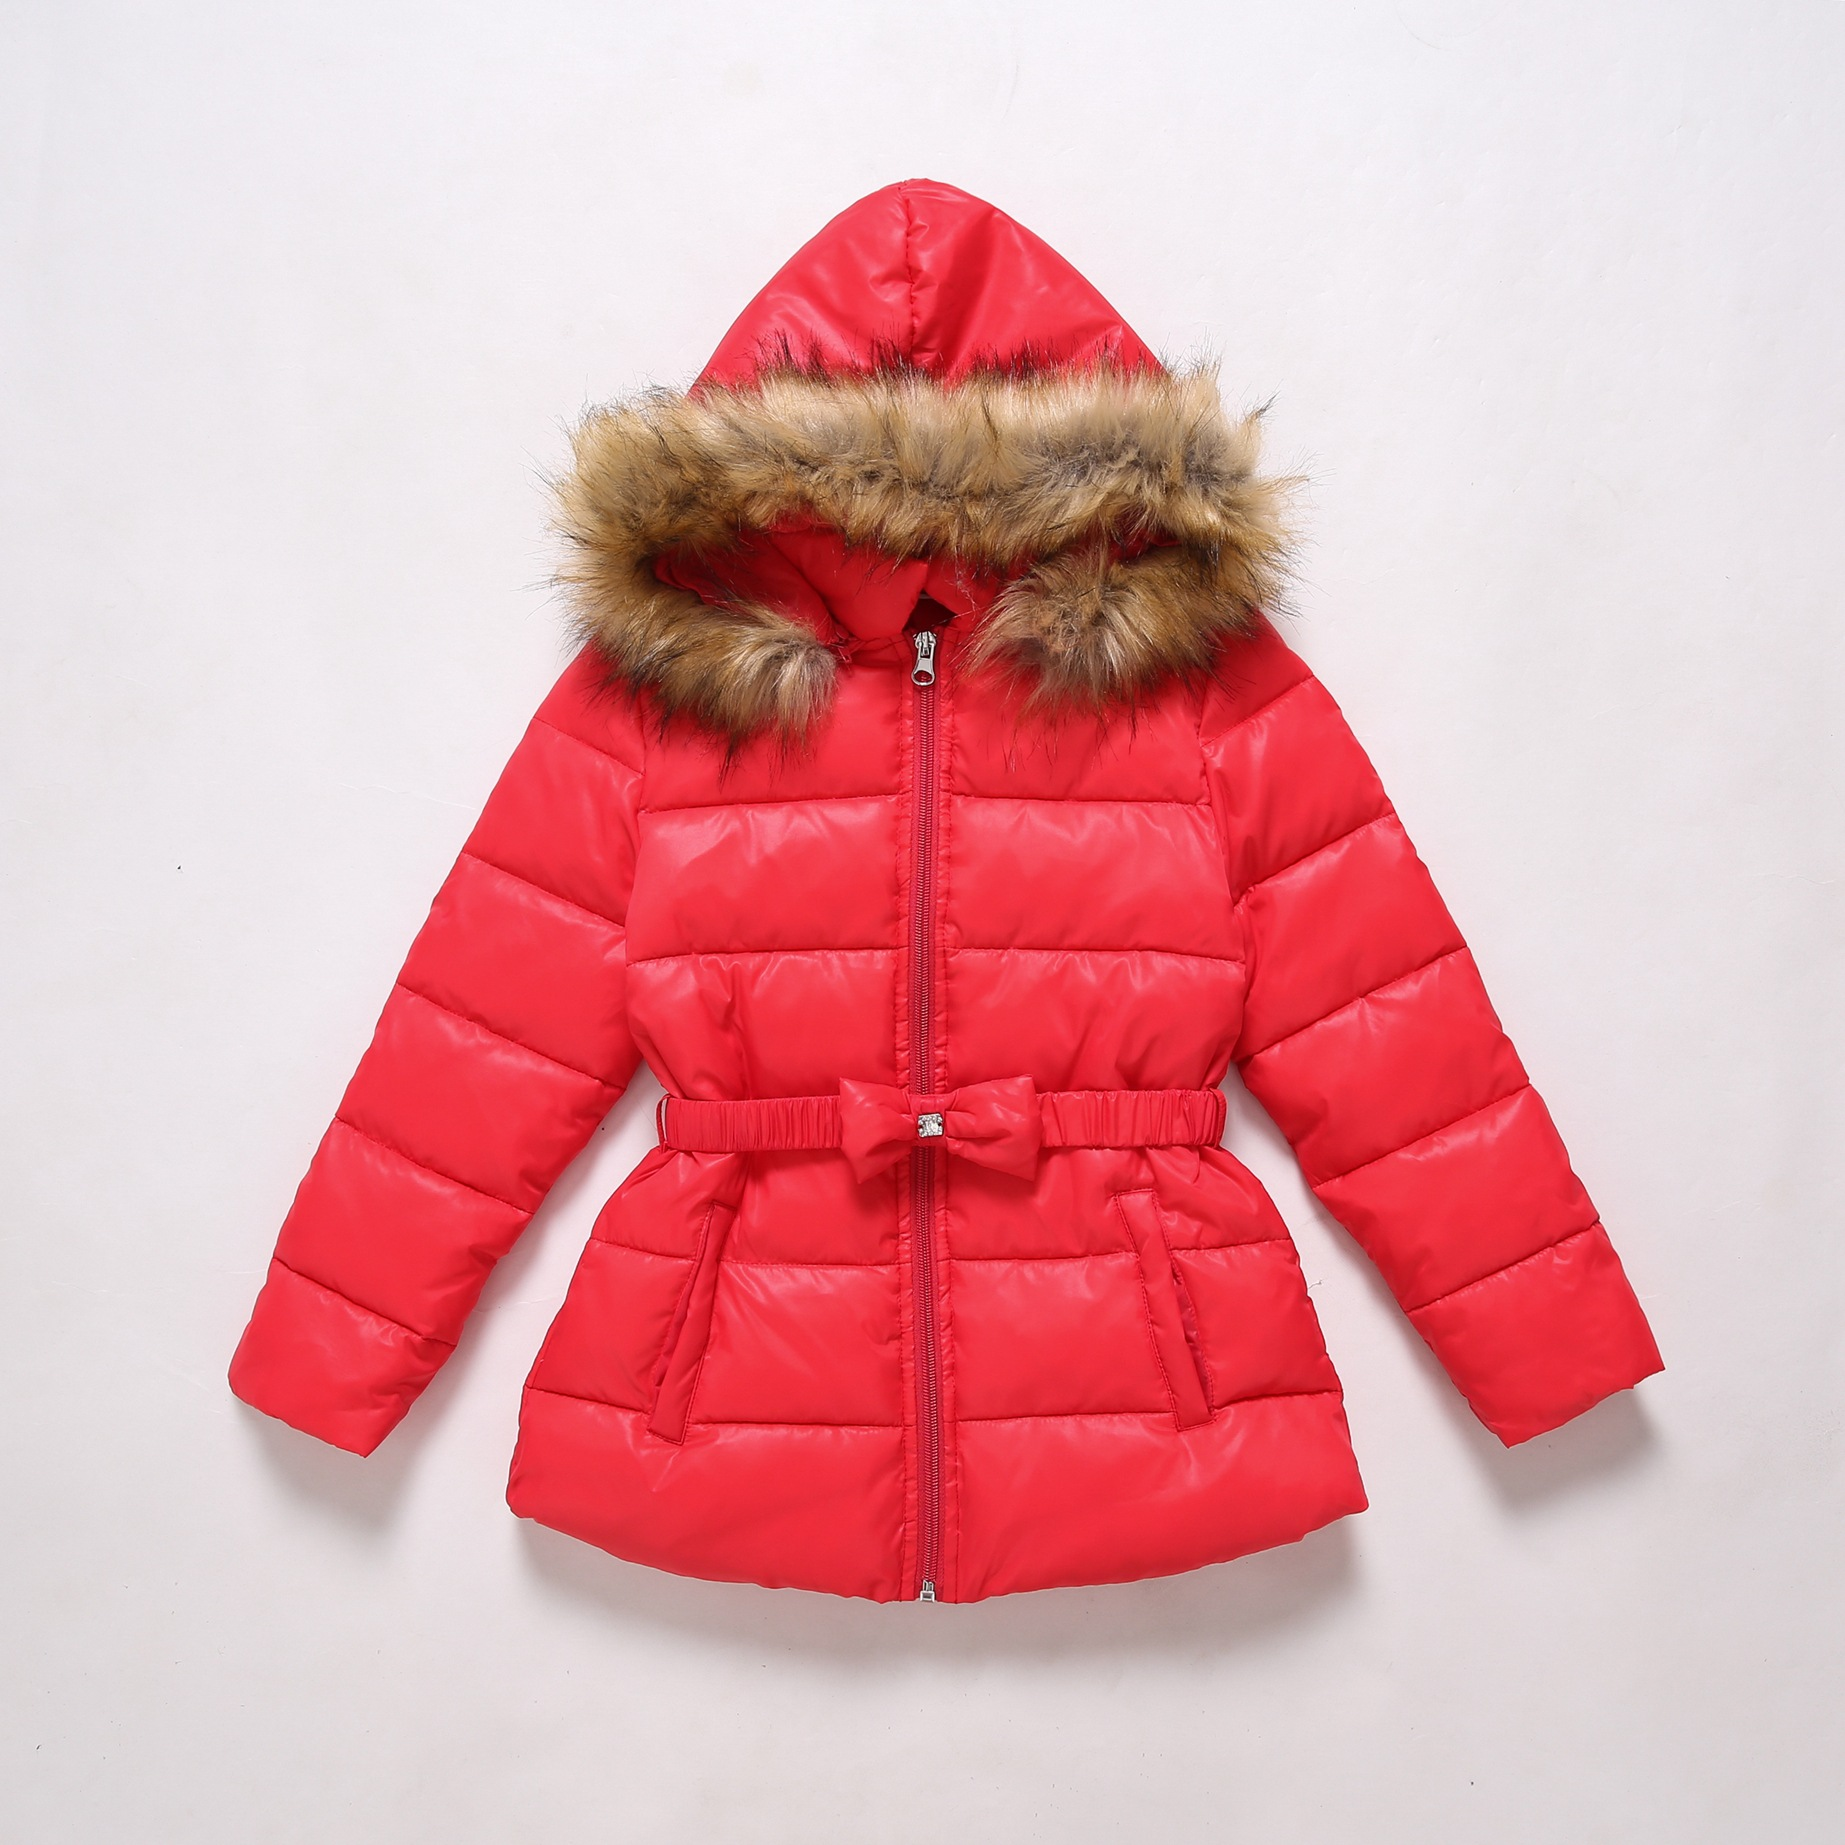 2018 Fashion Children Winter Jacket Girl Red Cotton-padded Coat Kids Warm Thick Fur Collar Hooded Outwear 4 5 6 7 8 9 10 Yrs 2017 winter jacket women new fashion thick warm parkas for female fake fur collar cotton slim padded hooded outwear